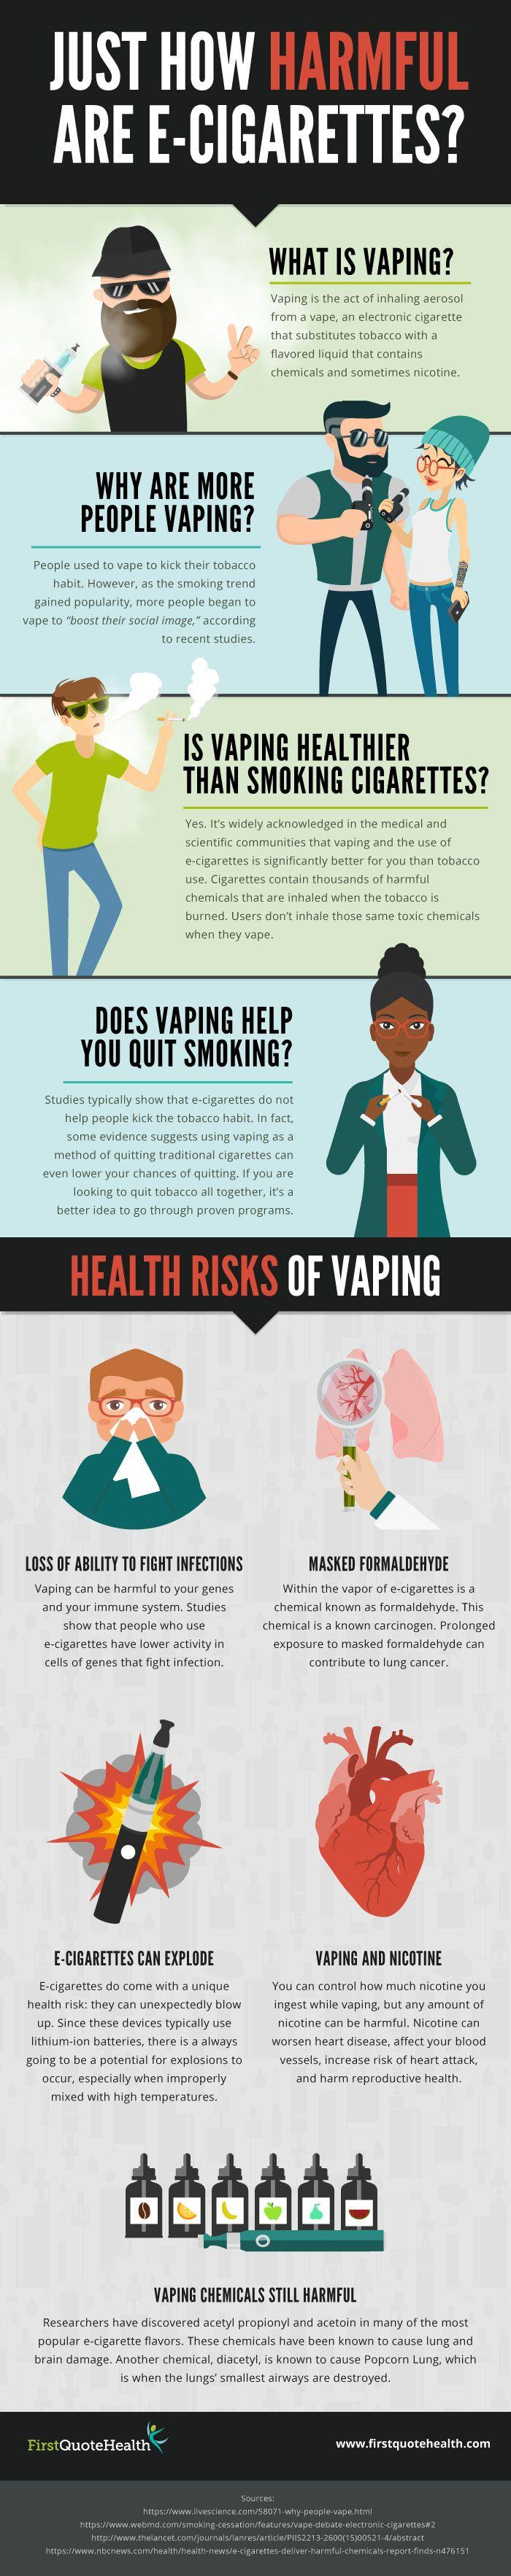 Vaping health risks infographic